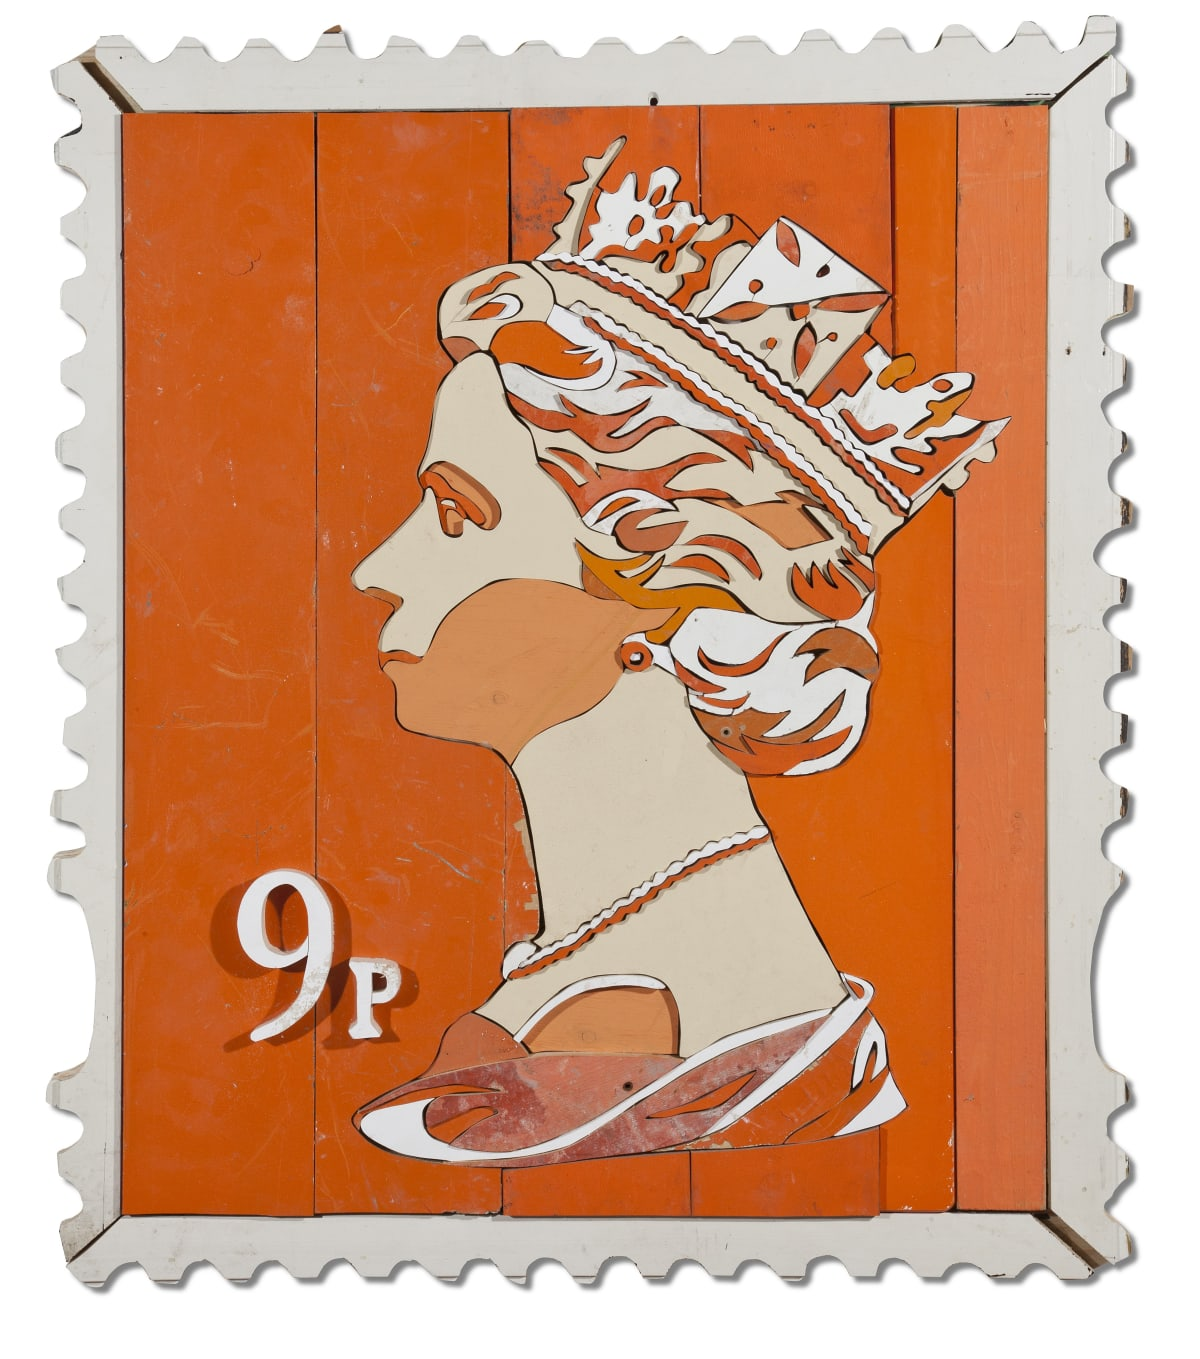 9p Queen Stamp Colored salvaged wood 100 x 85 x 3.5 cm